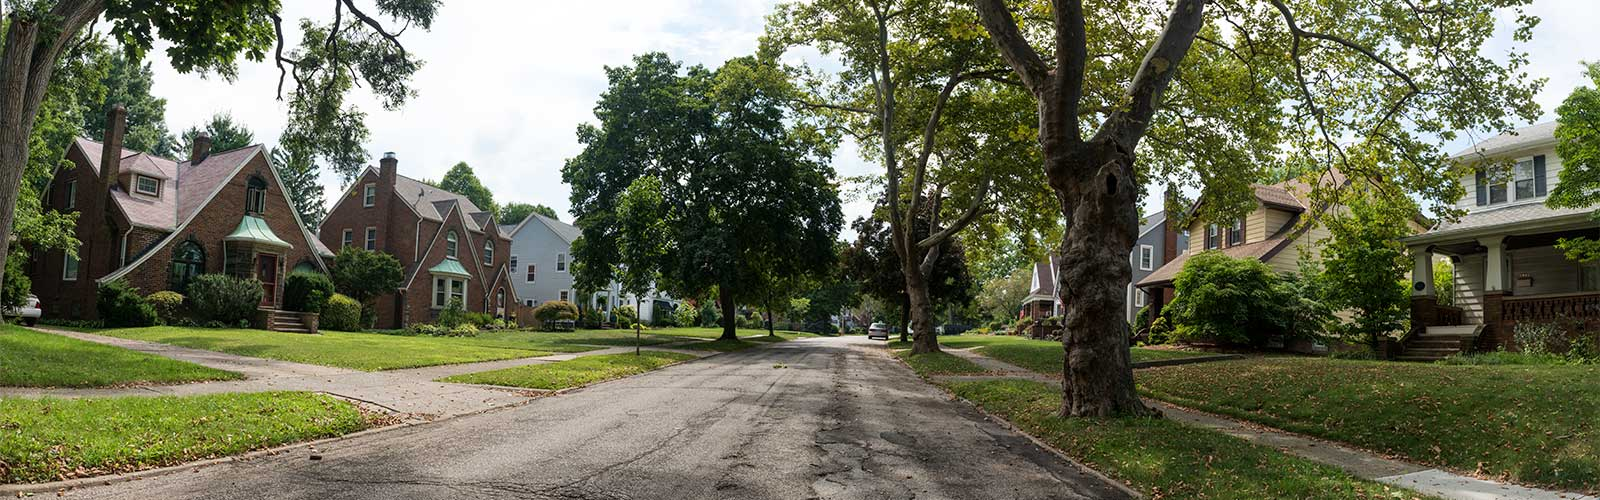 Old Brooklyn South Hills neighborhood <span class='image-credits'>Bob Perkoski</span>